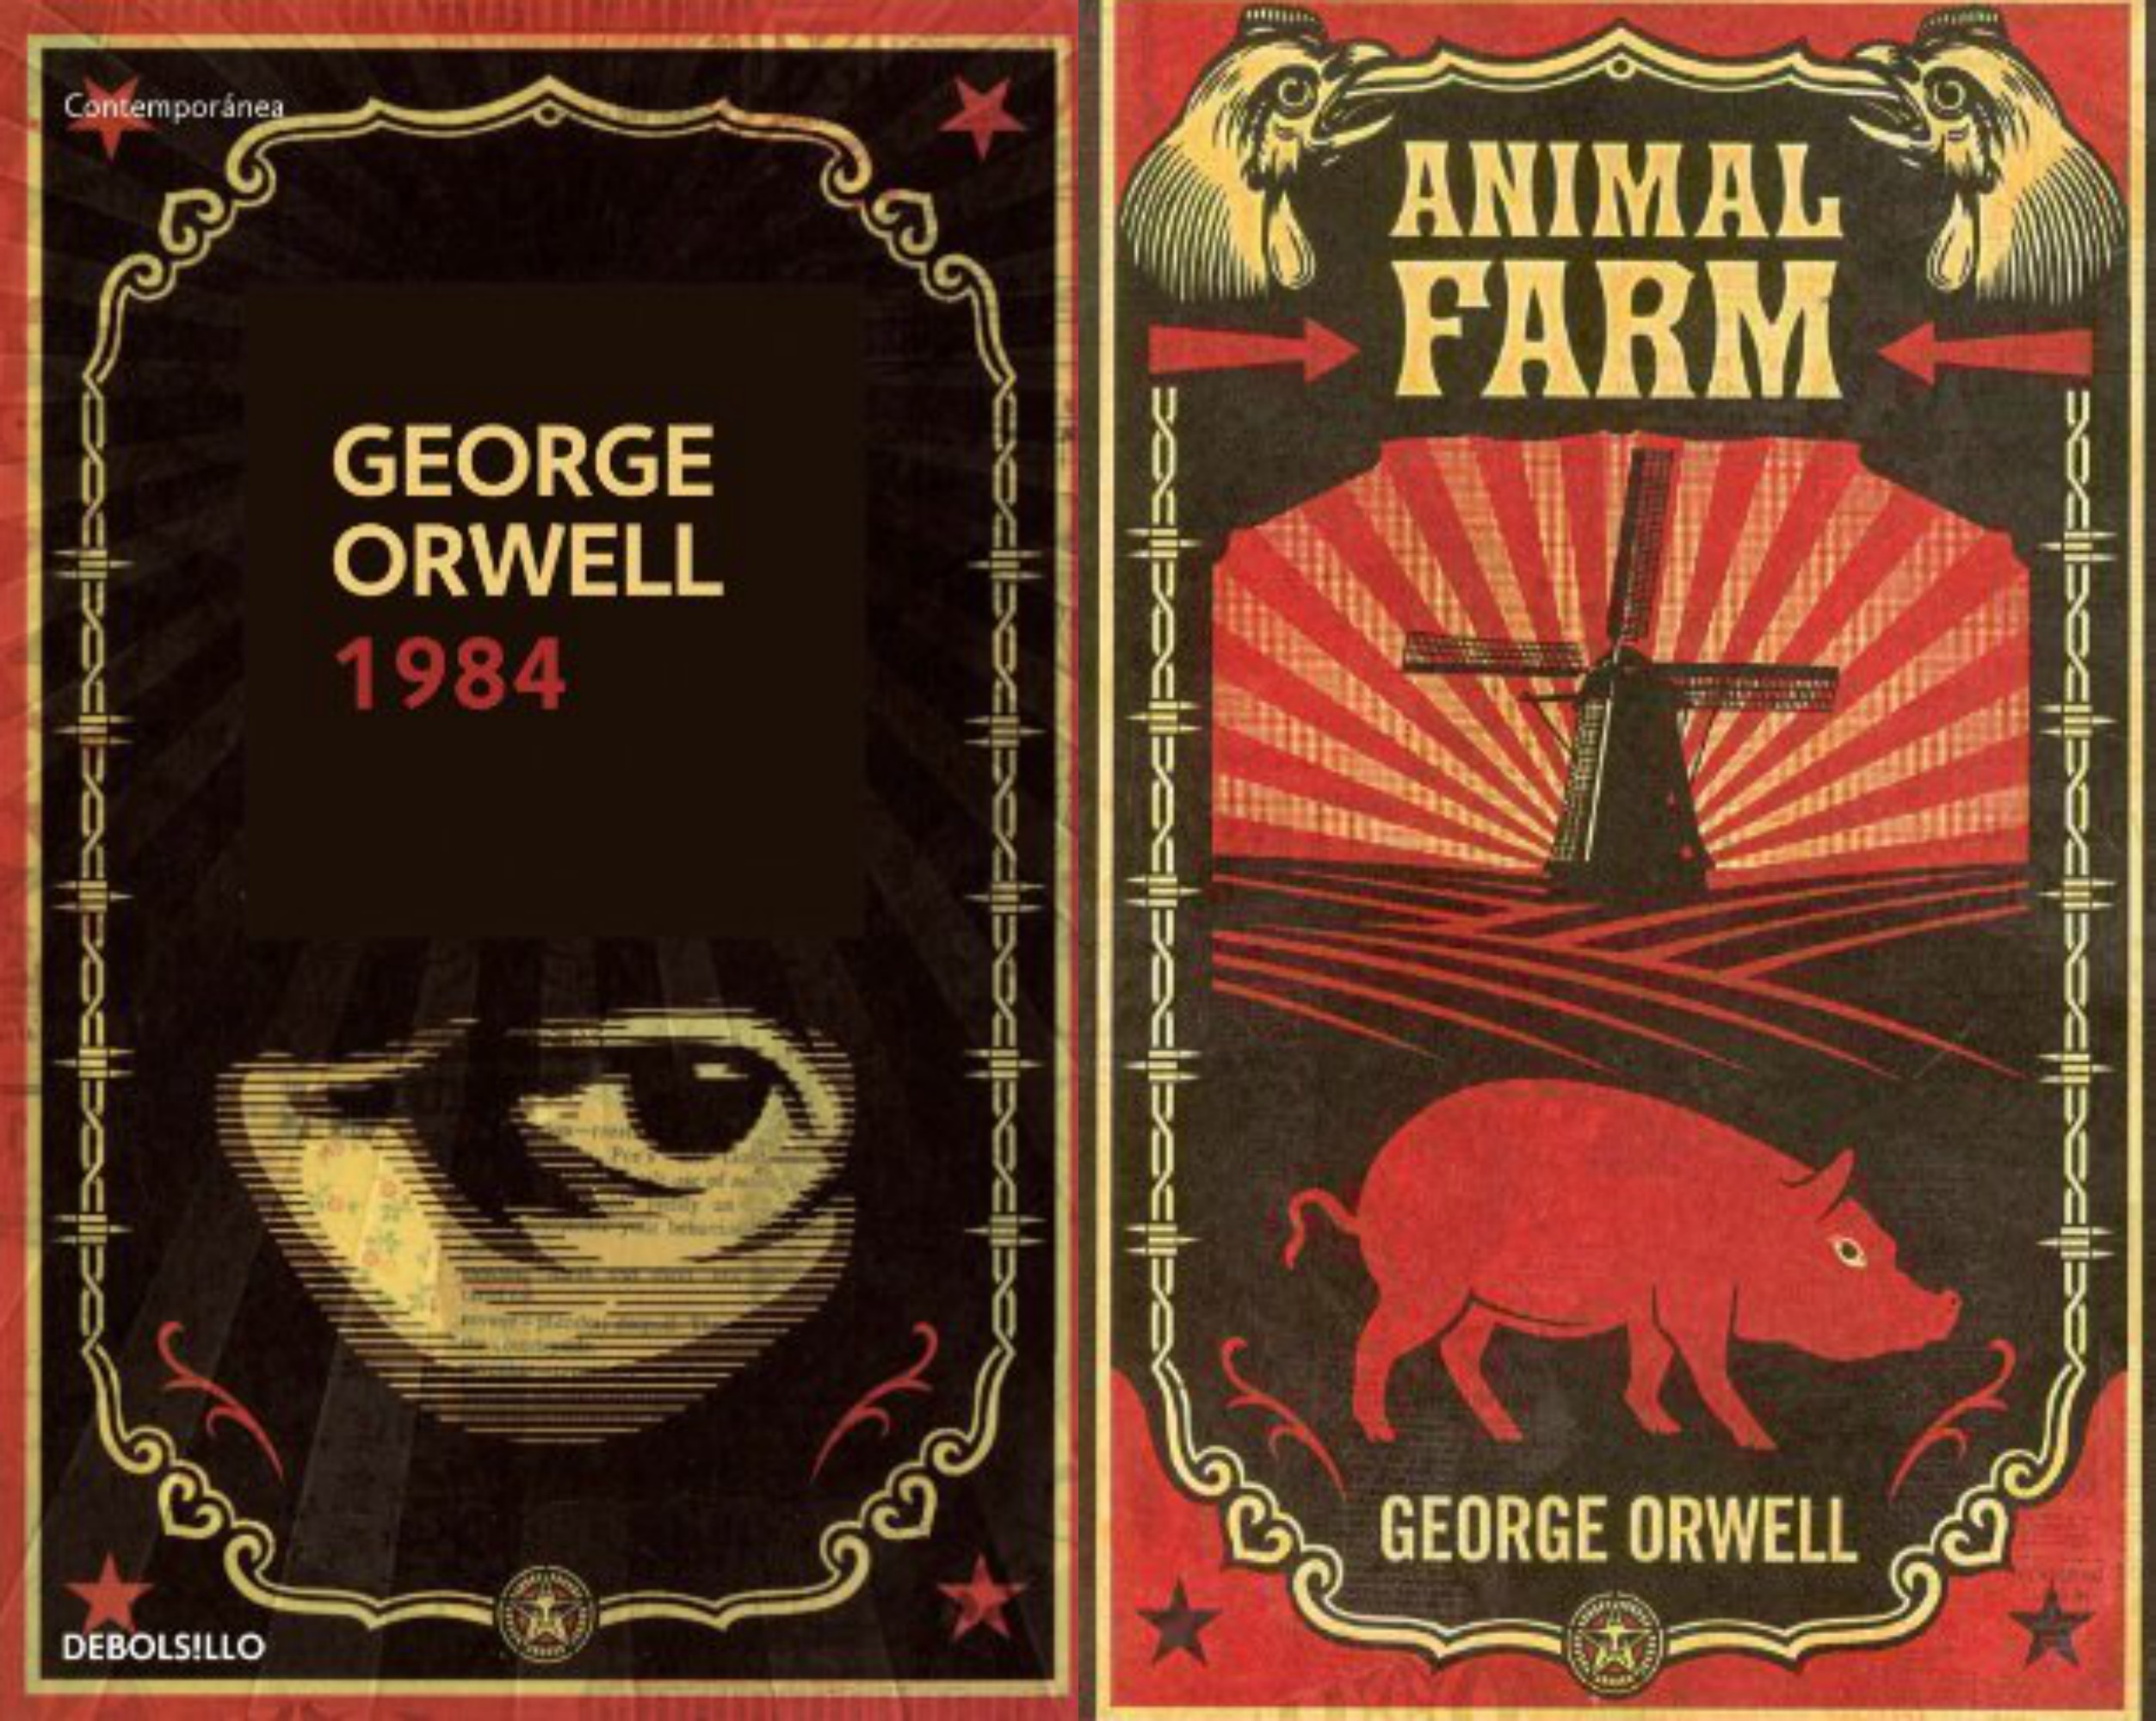 1984 vs animal farm One of orwell's central concerns, both in animal farm and in 1984, is the way in which language can be manipulated as an instrument of control in animal farm, the pigs gradually twist and distort a rhetoric of socialist revolution to justify their behavior and to keep the other animals in the dark.